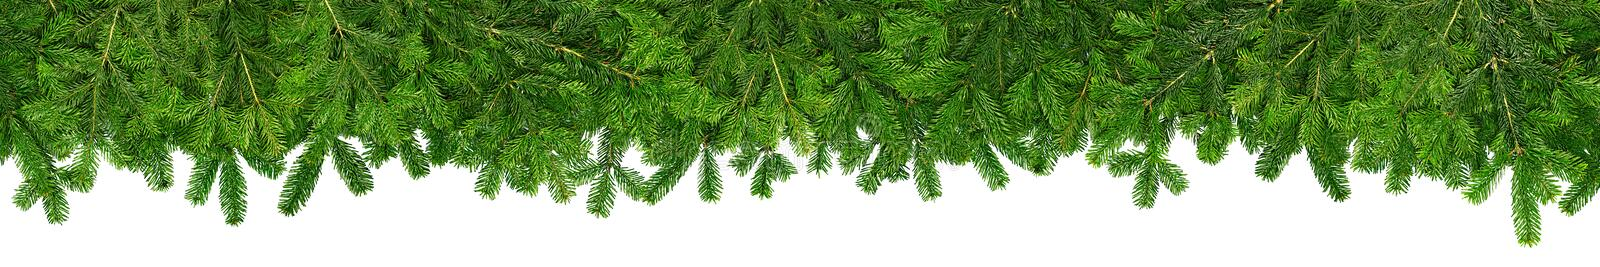 Christmas garland super wide panorama banner with fir branches royalty free stock images